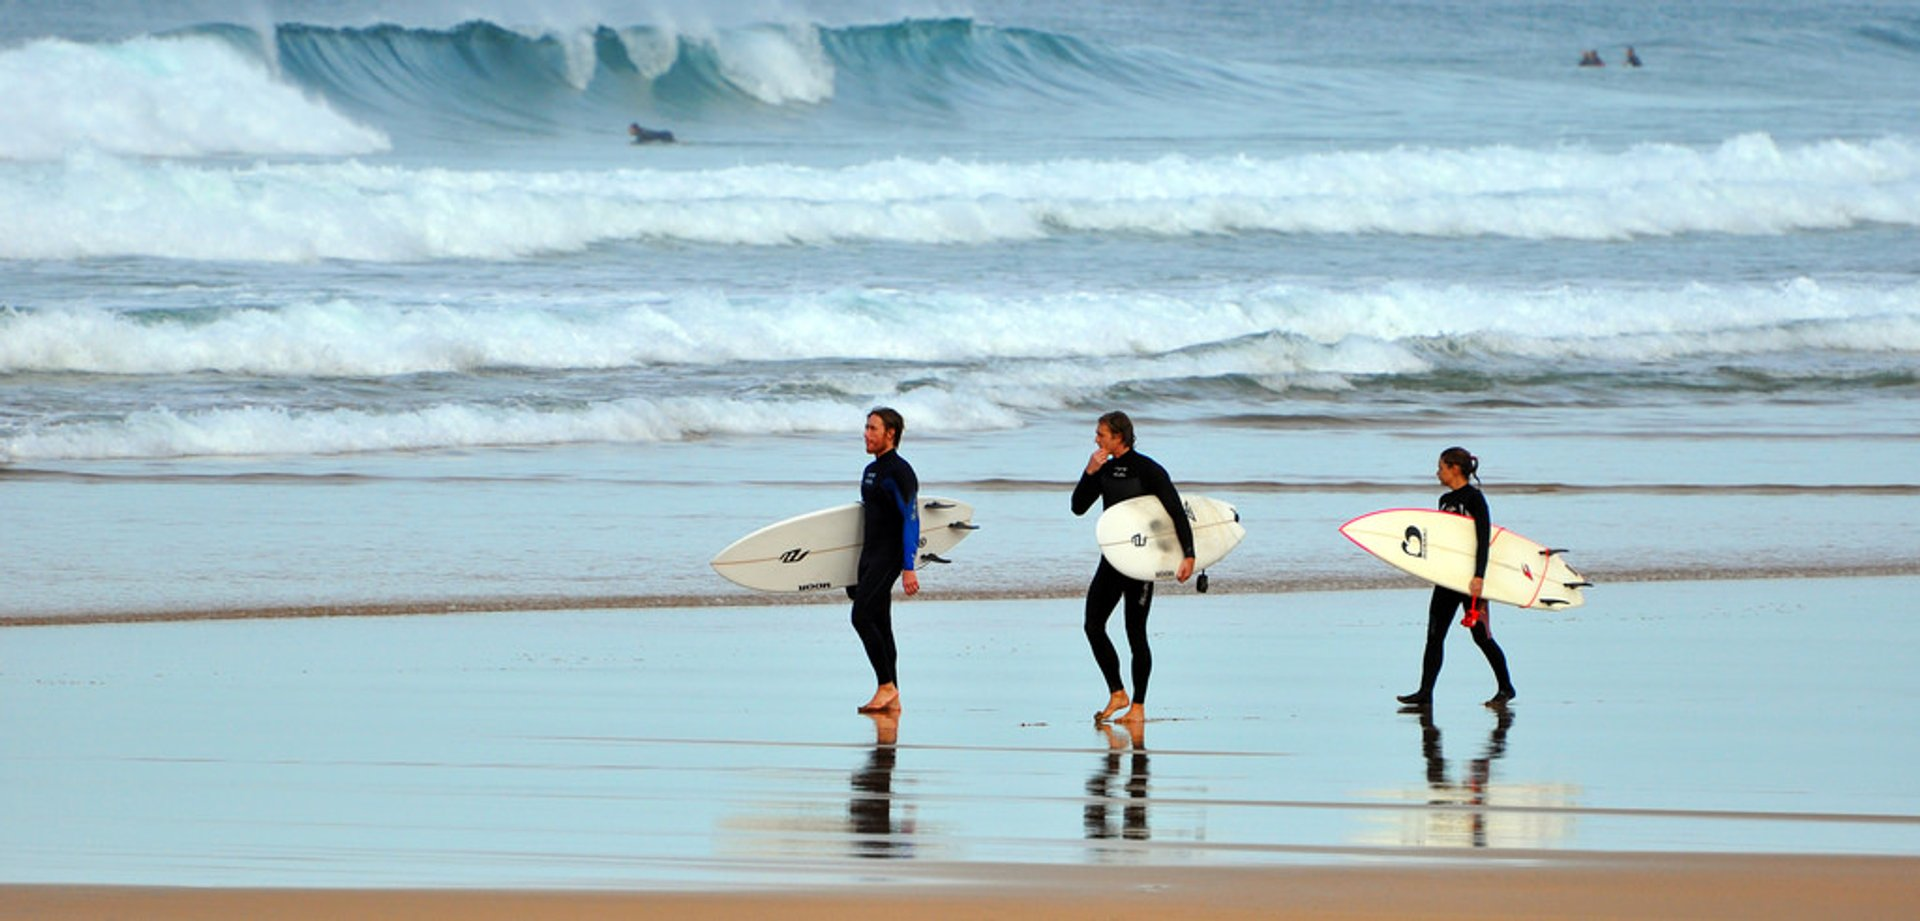 Surfing in Zarautz in Basque Country - Best Season 2020